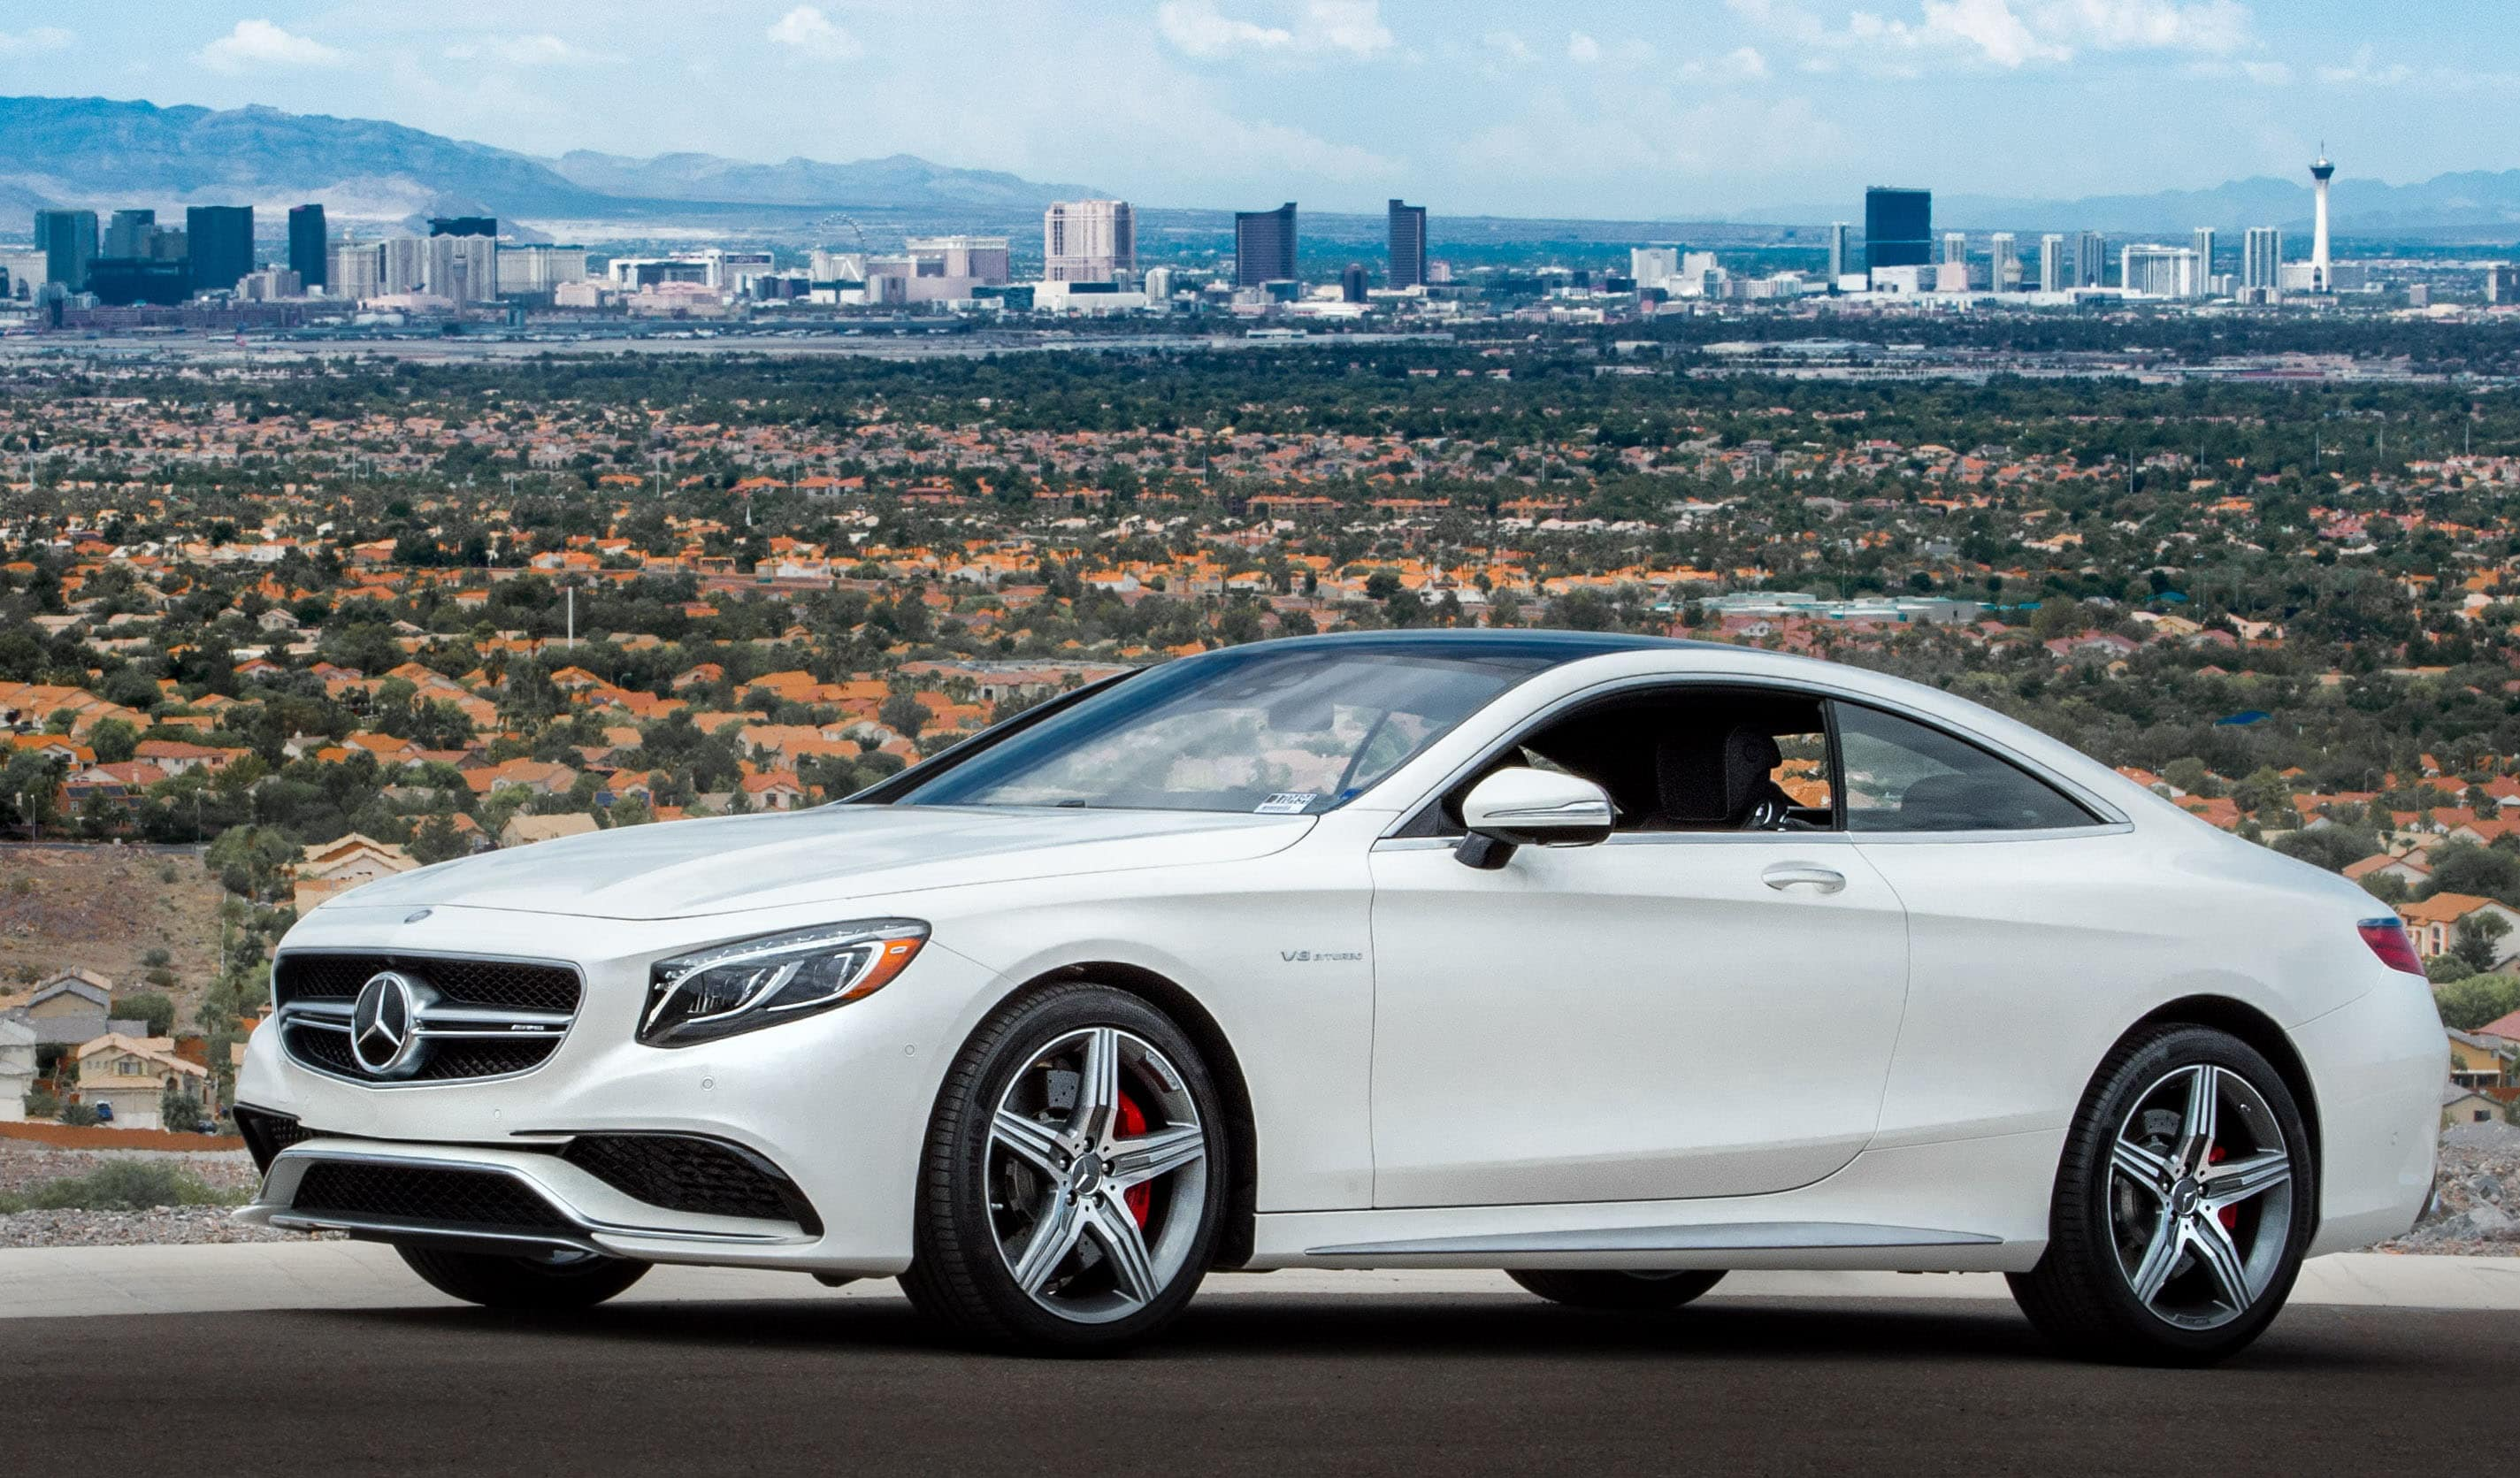 Mercedes-Benz Coupe in front of Las Vegas Skyline 2